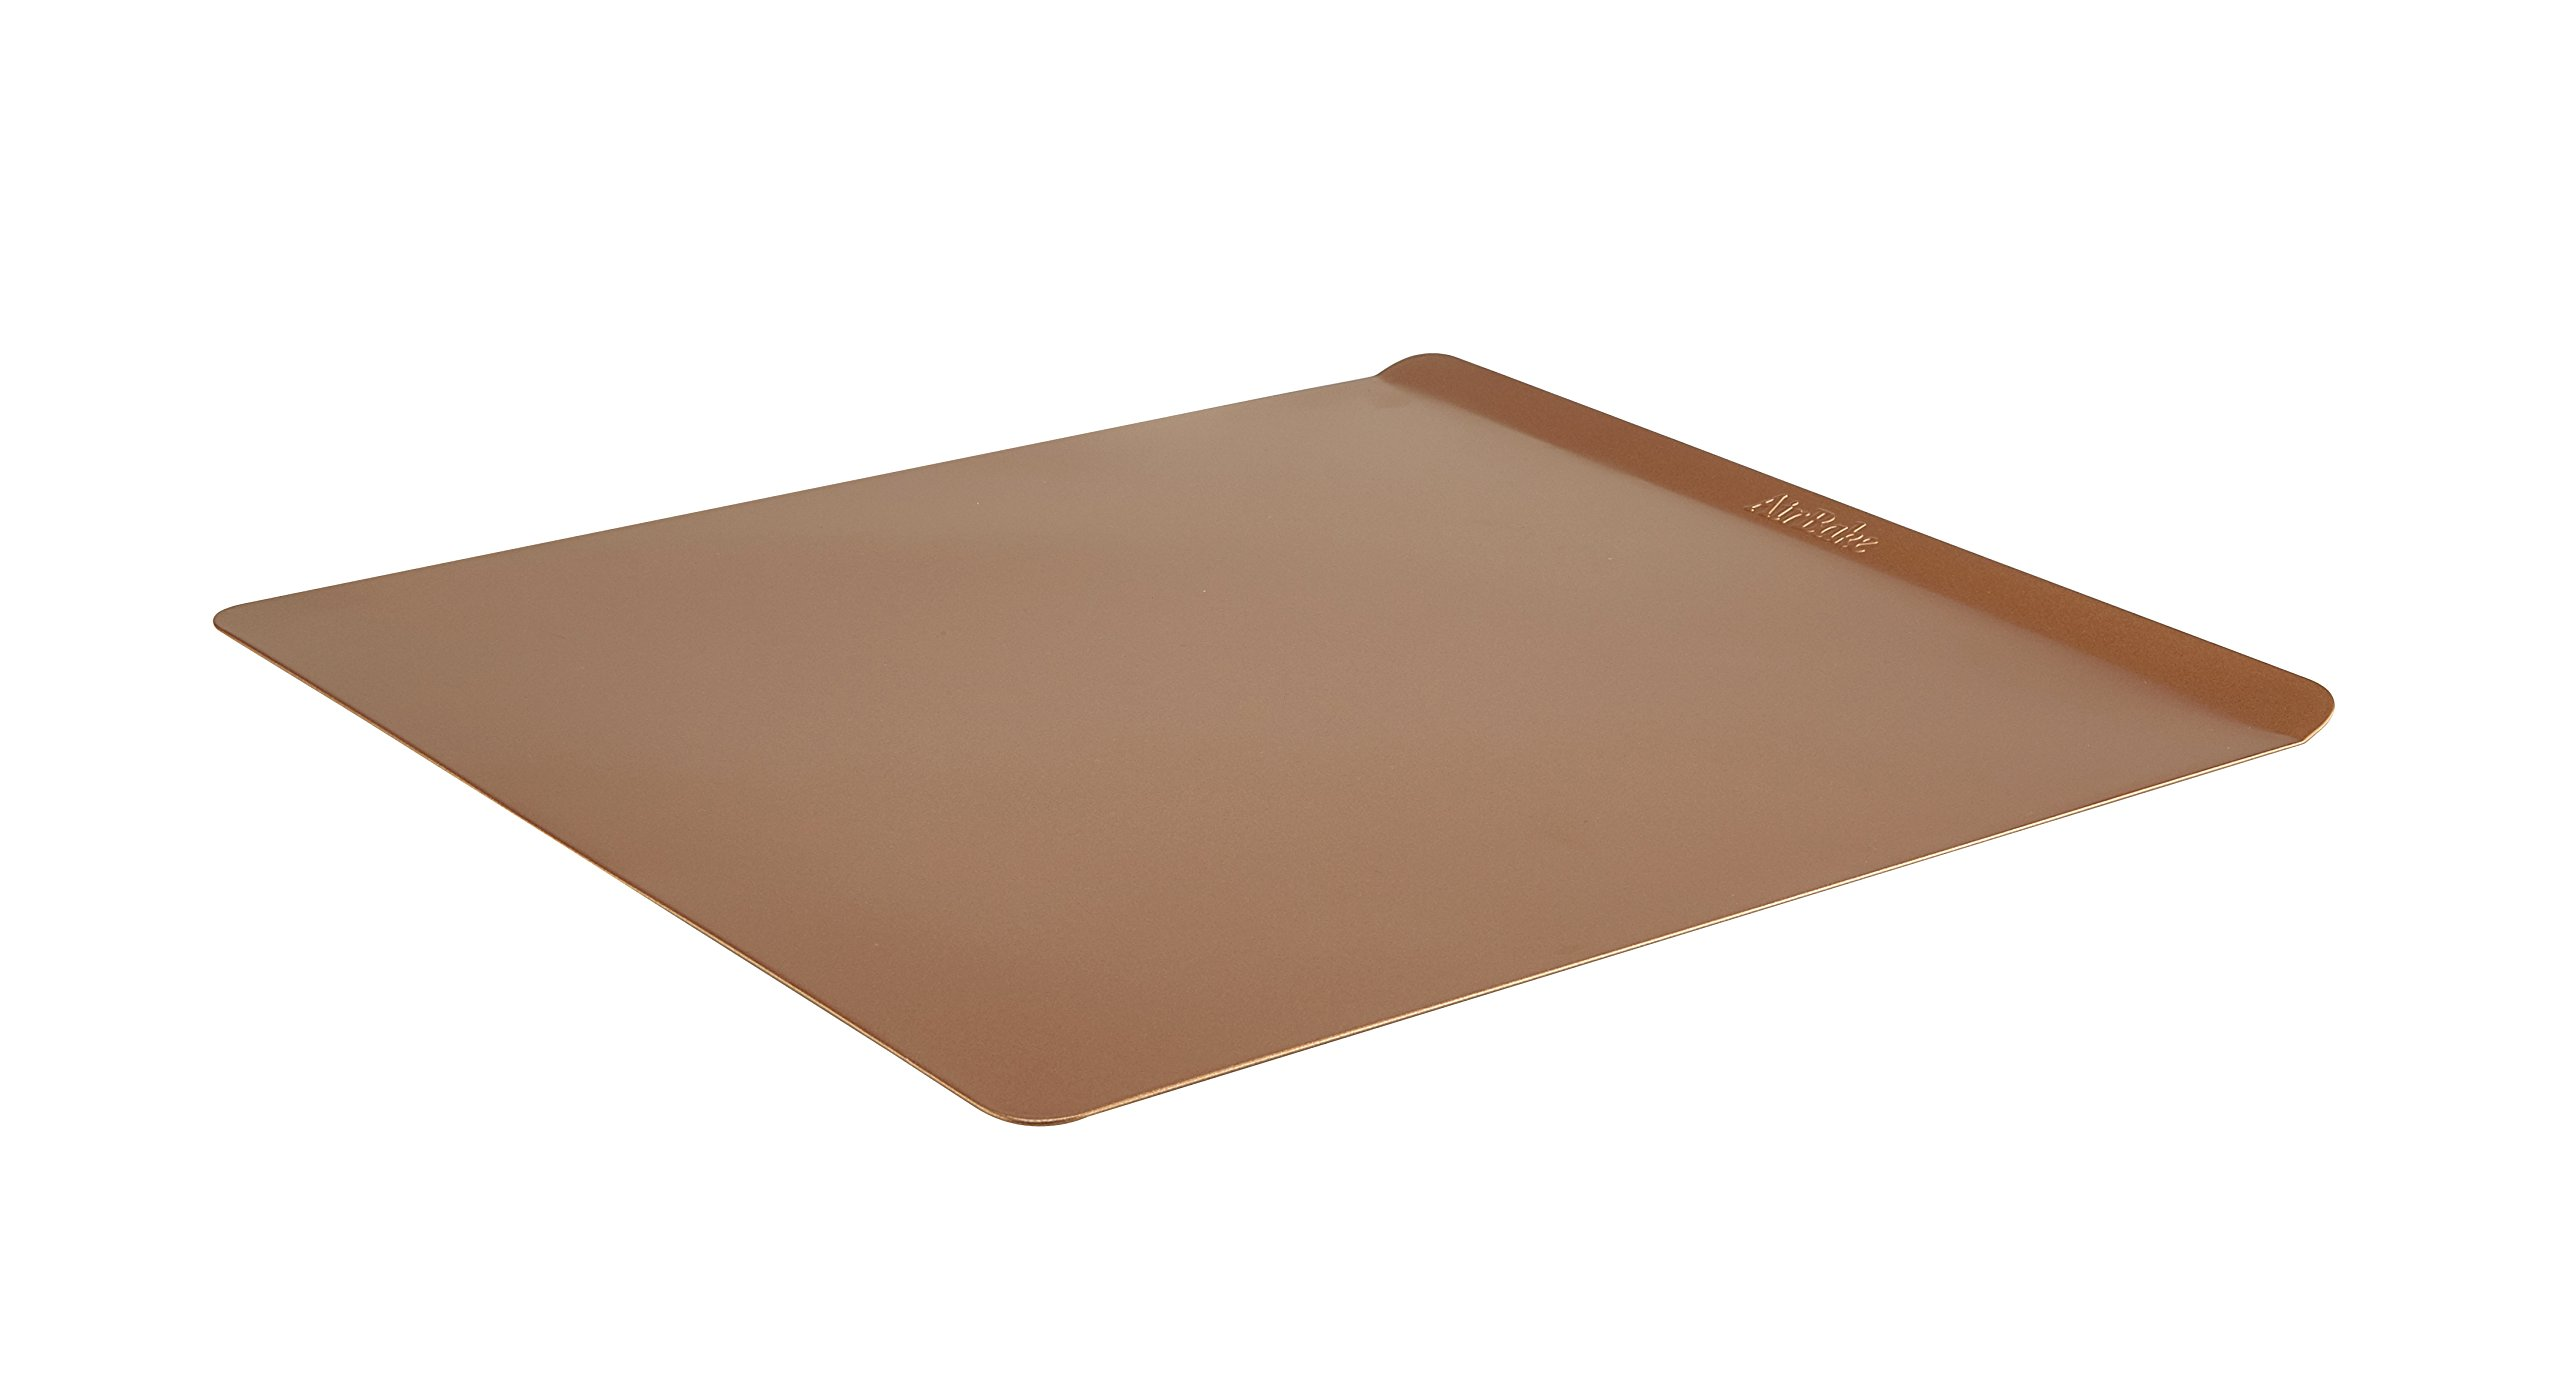 T-fal 84812 Airbake Cookie Sheet Nonstick, Large, Copper